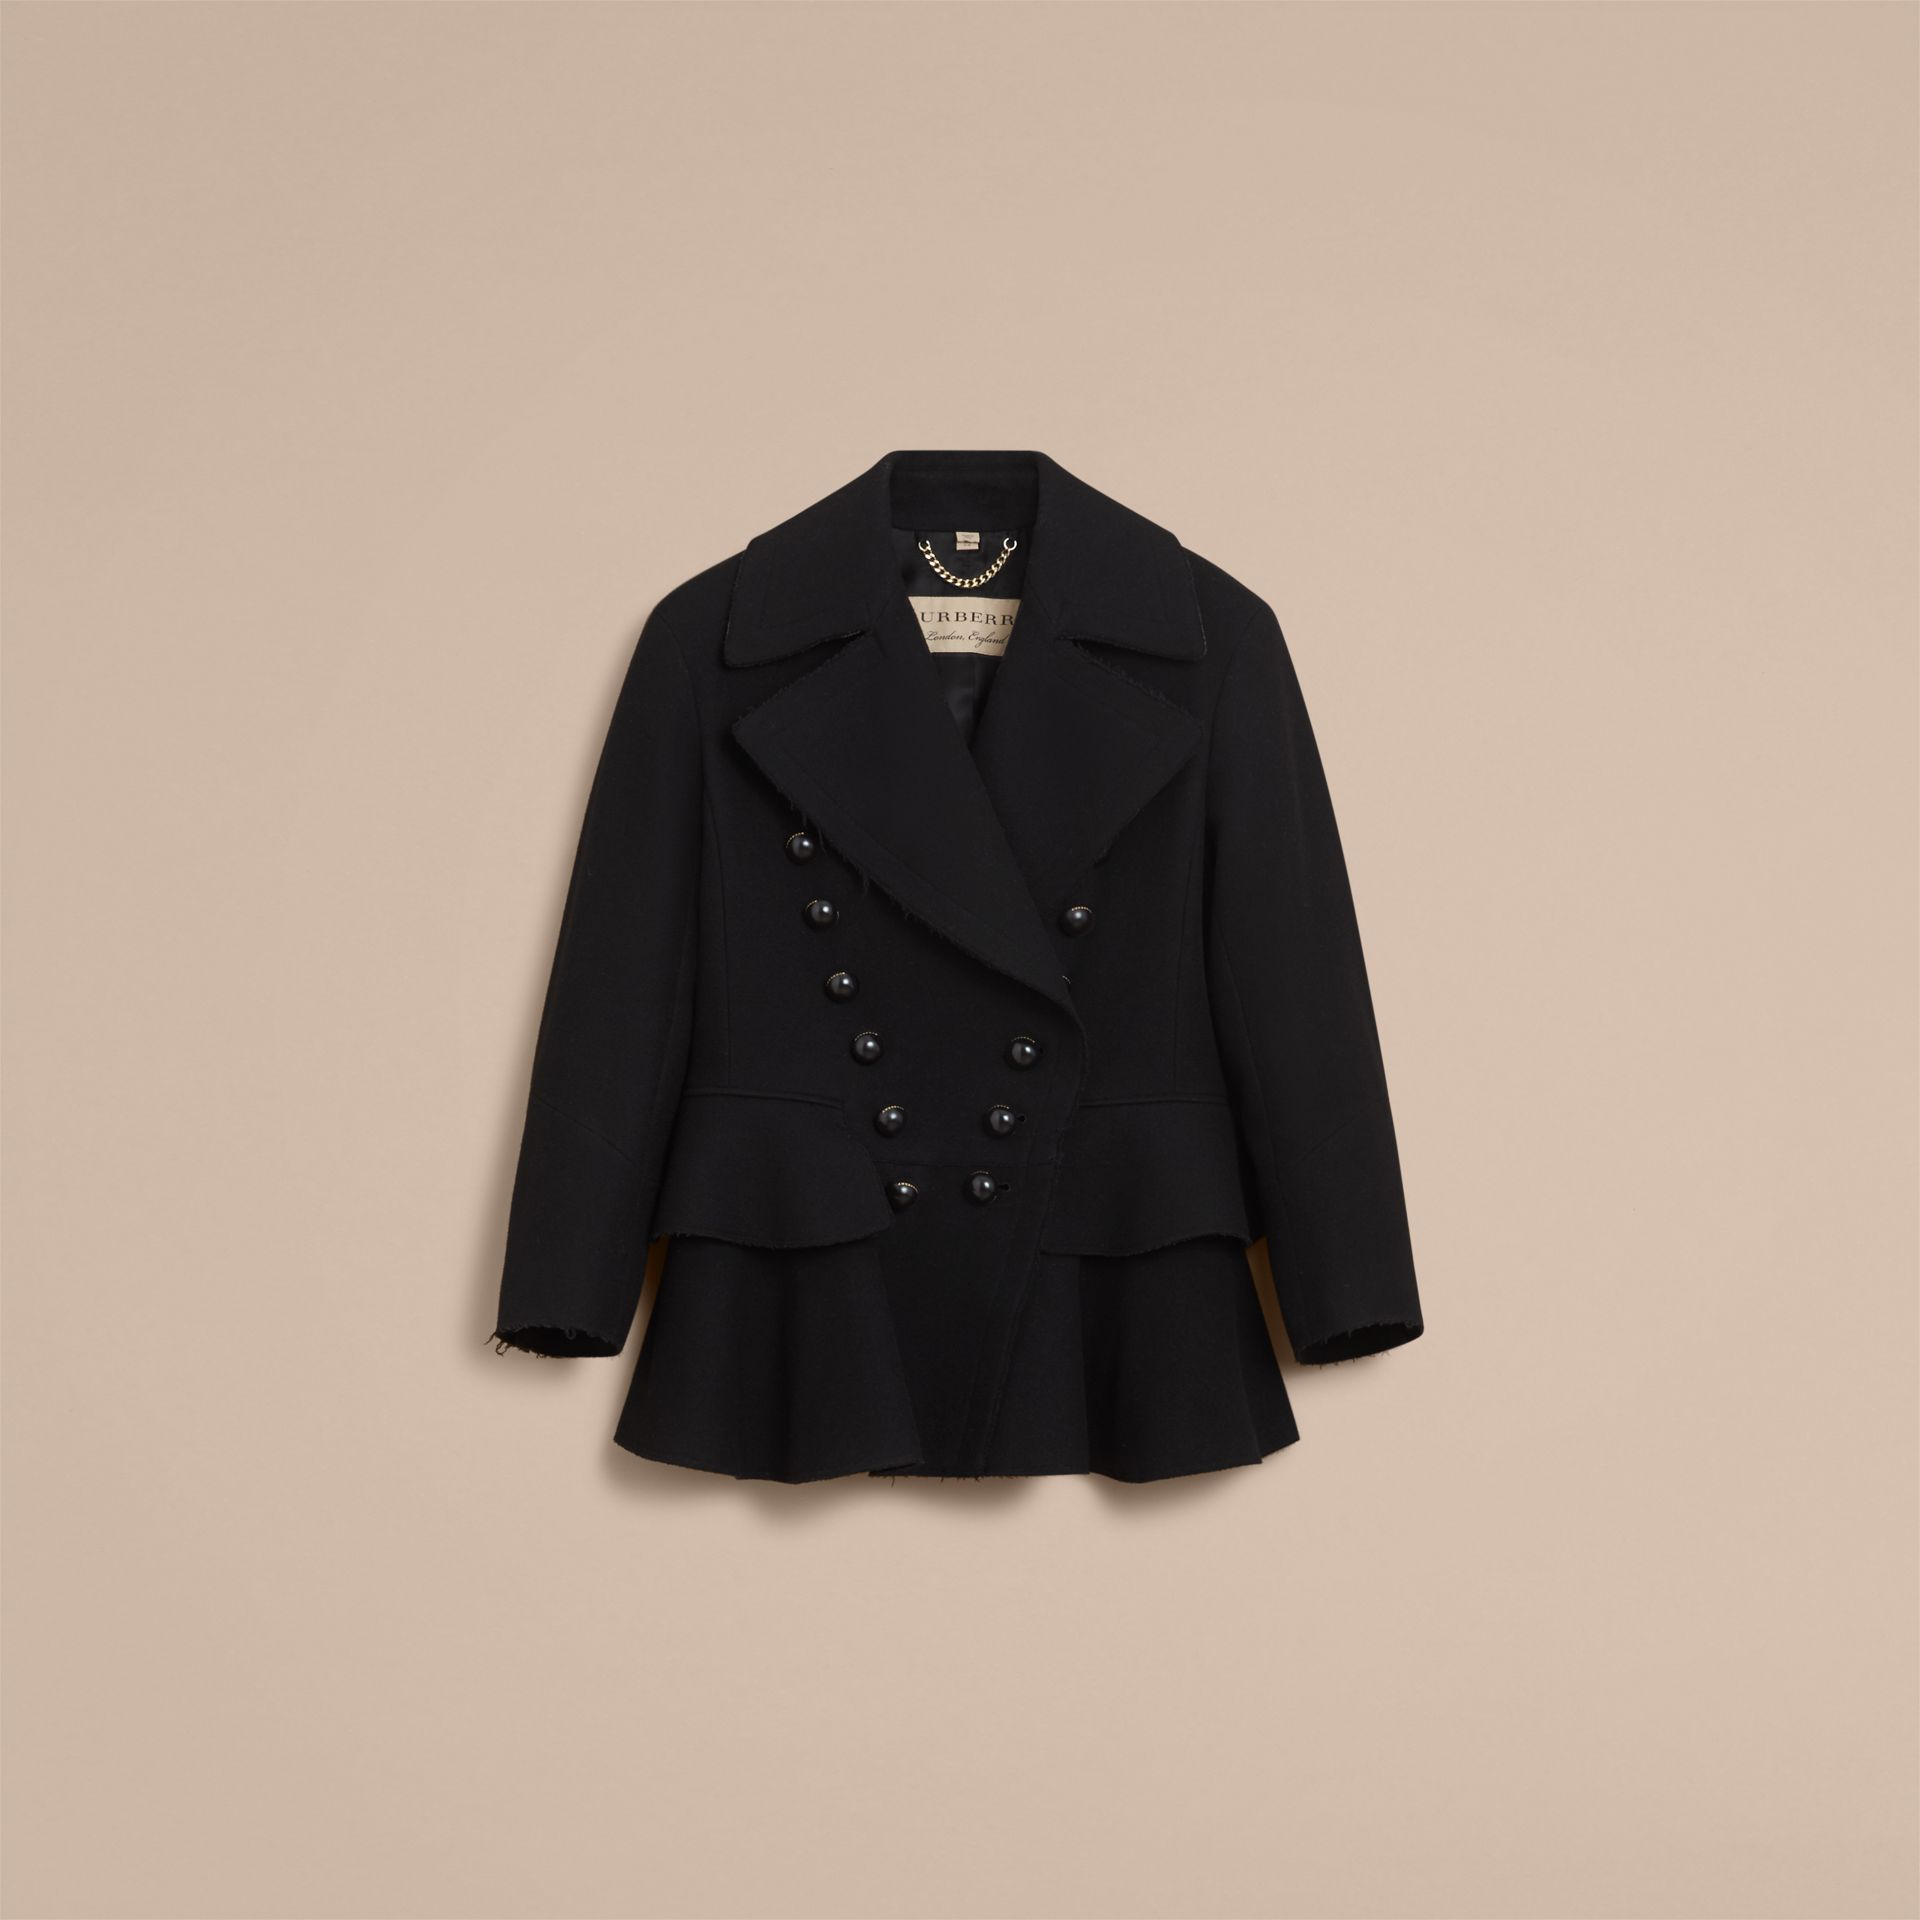 Wool Blend Peplum Jacket - Women | Burberry - gallery image 3